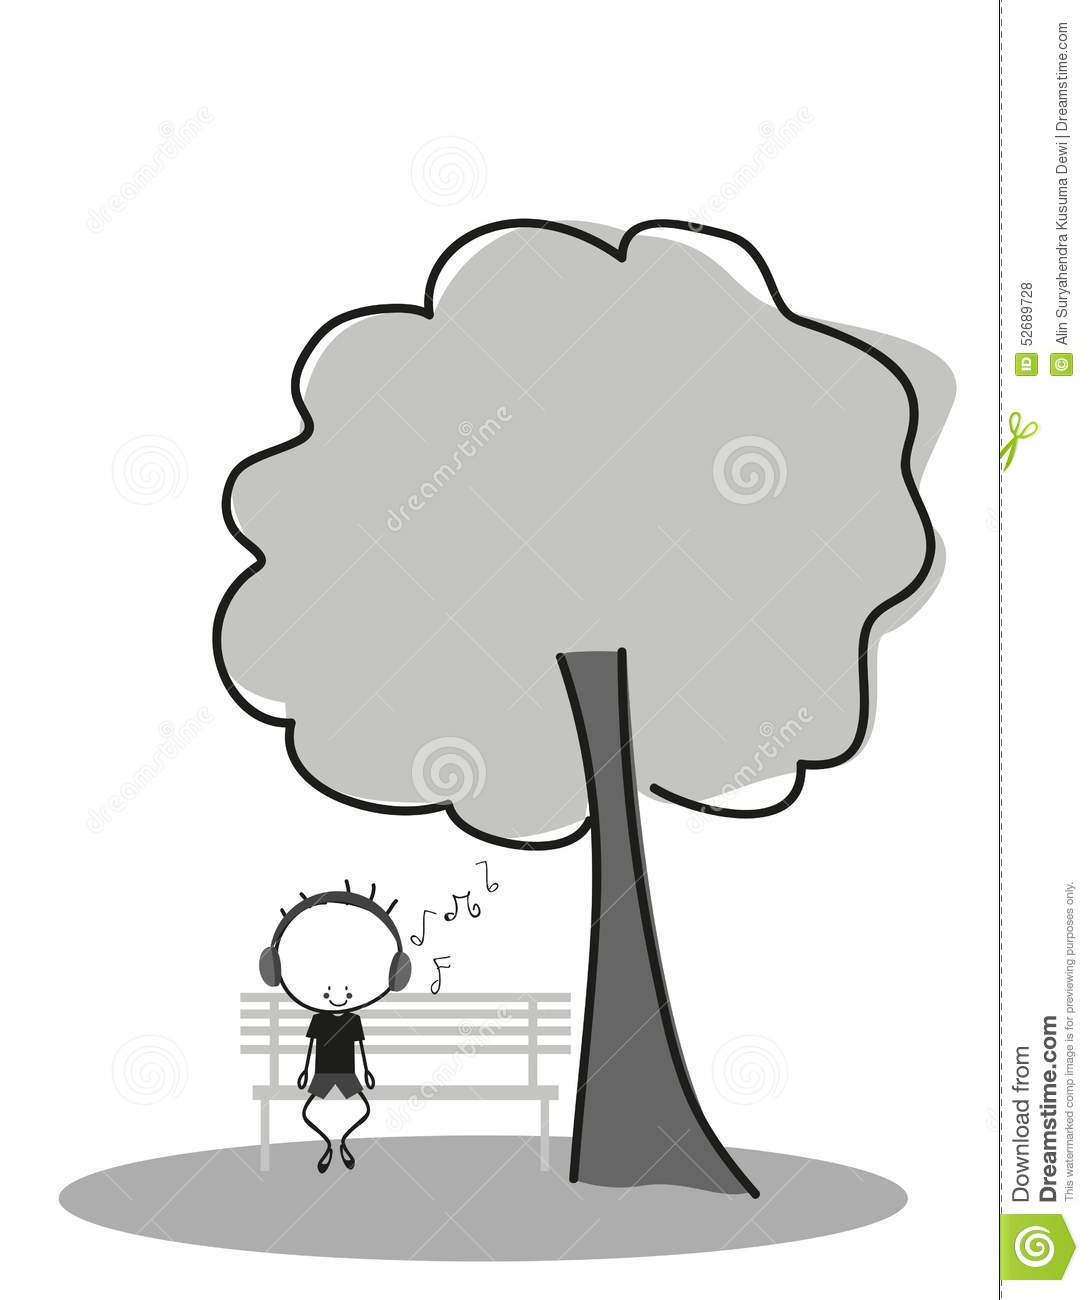 Doodle Boy Listen To Music While Sitting On A Park Bench Under A Tree Stock Vector Image 52689728